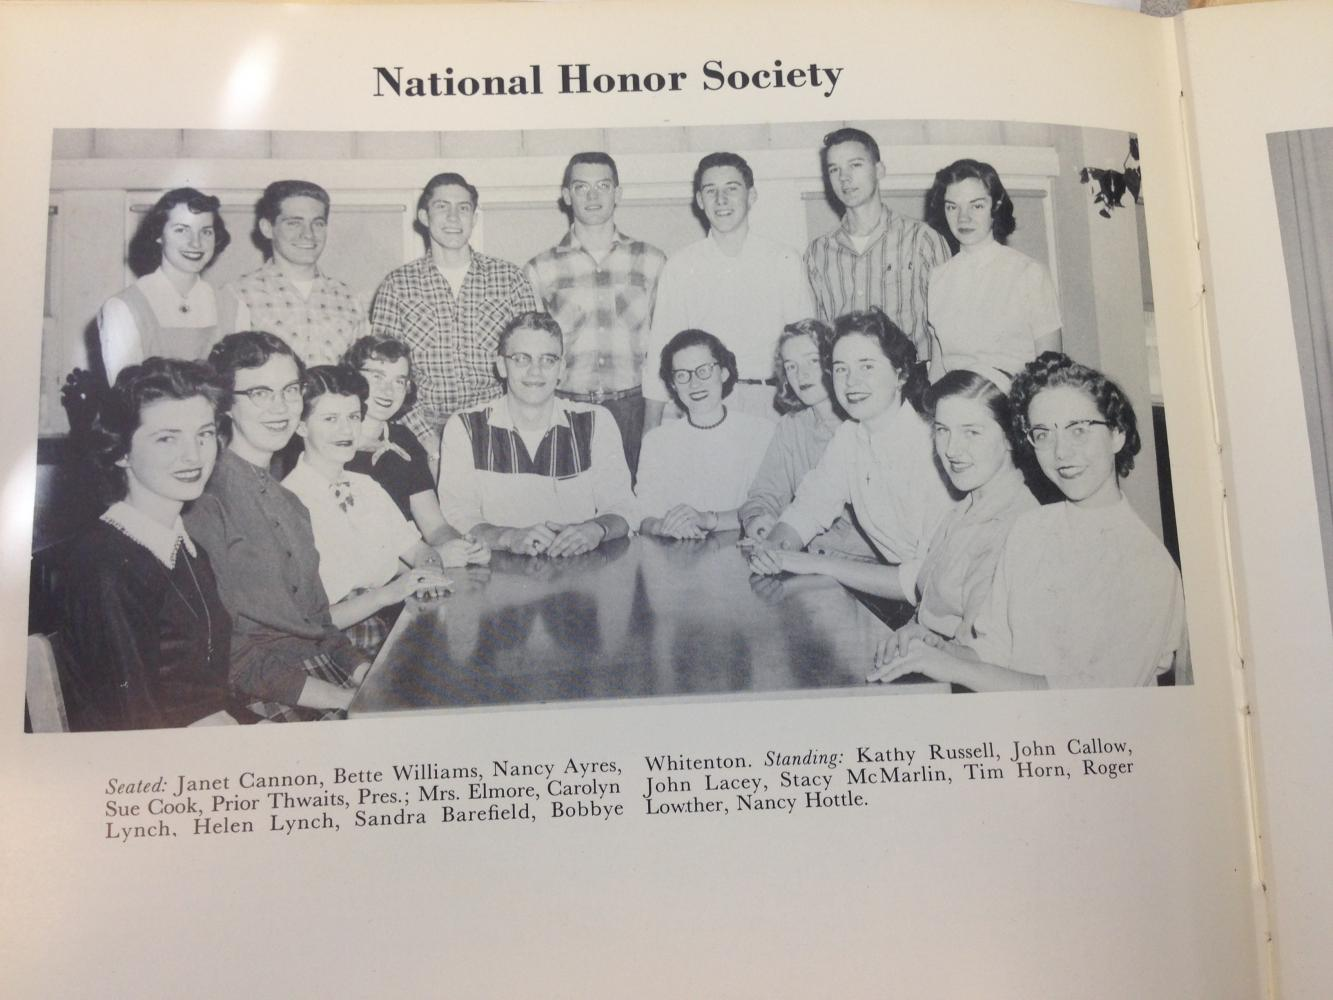 Members of the first National Honor Society in 1957.  Some activities that they began are College Nights where juniors and seniors talk to representatives from many colleges. They would also offer scholarships to their members by raising money through bake sales.